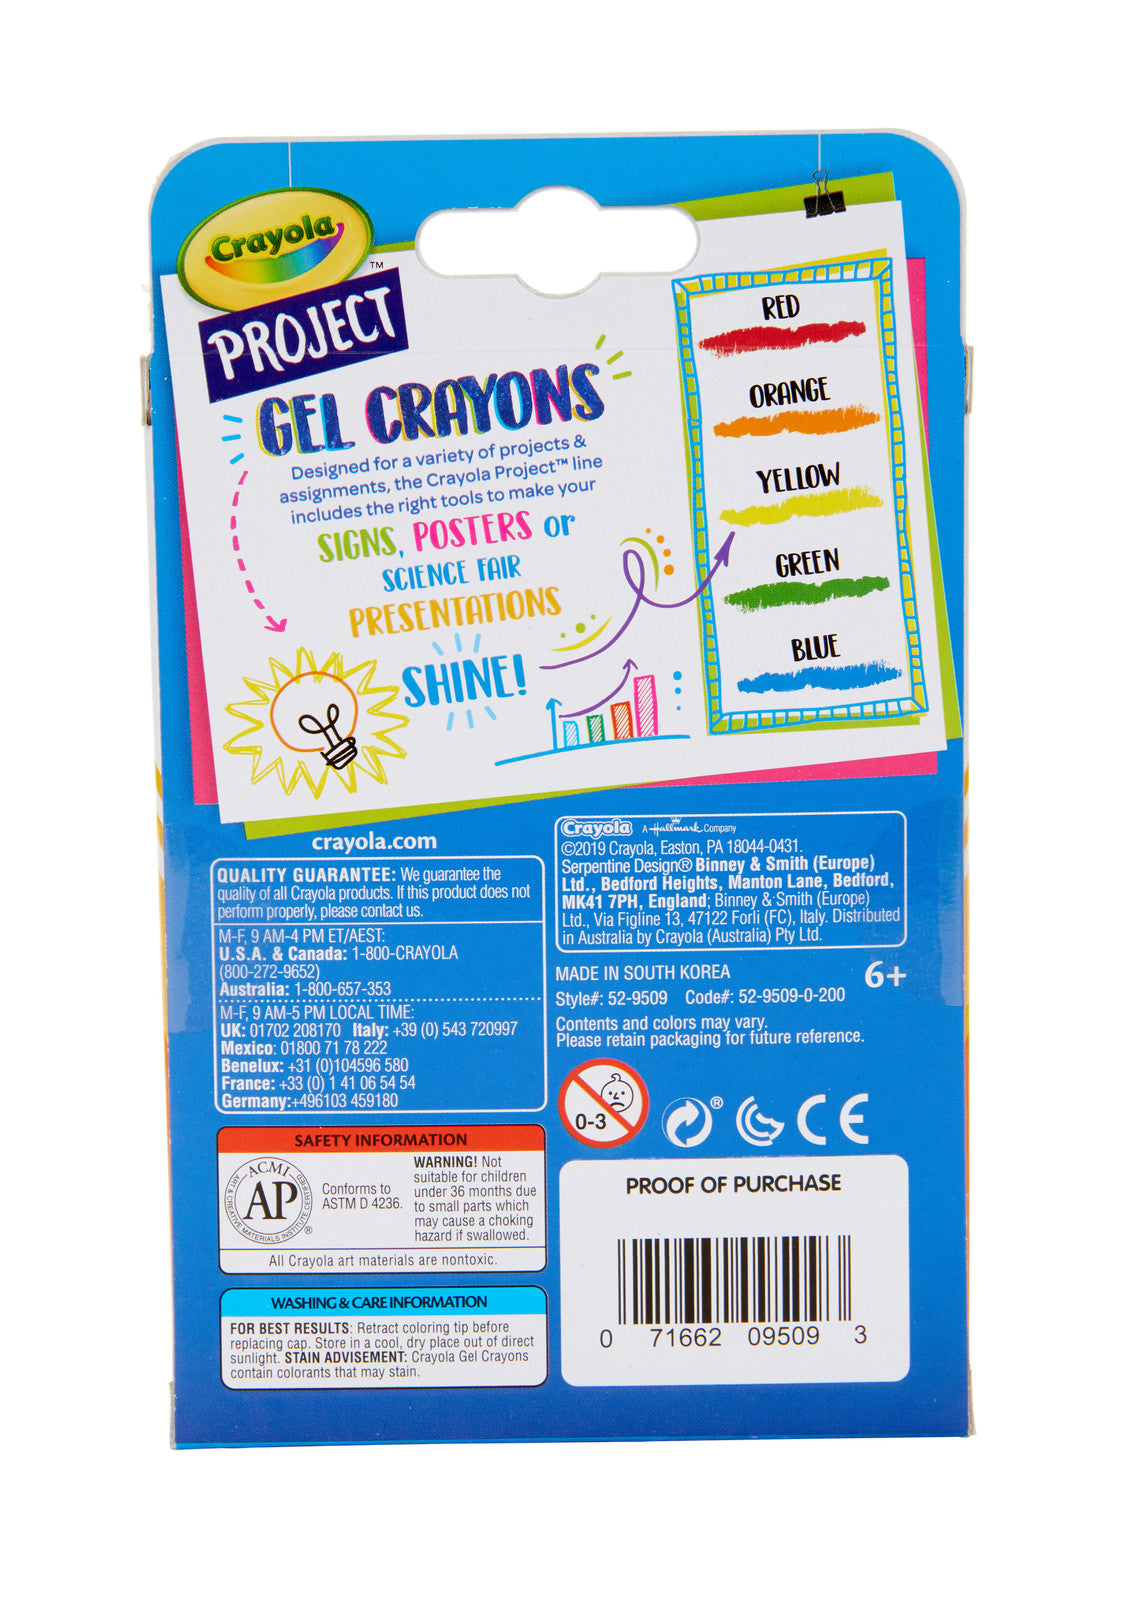 Crayola: Project - Gel Crayons (5-Pack)